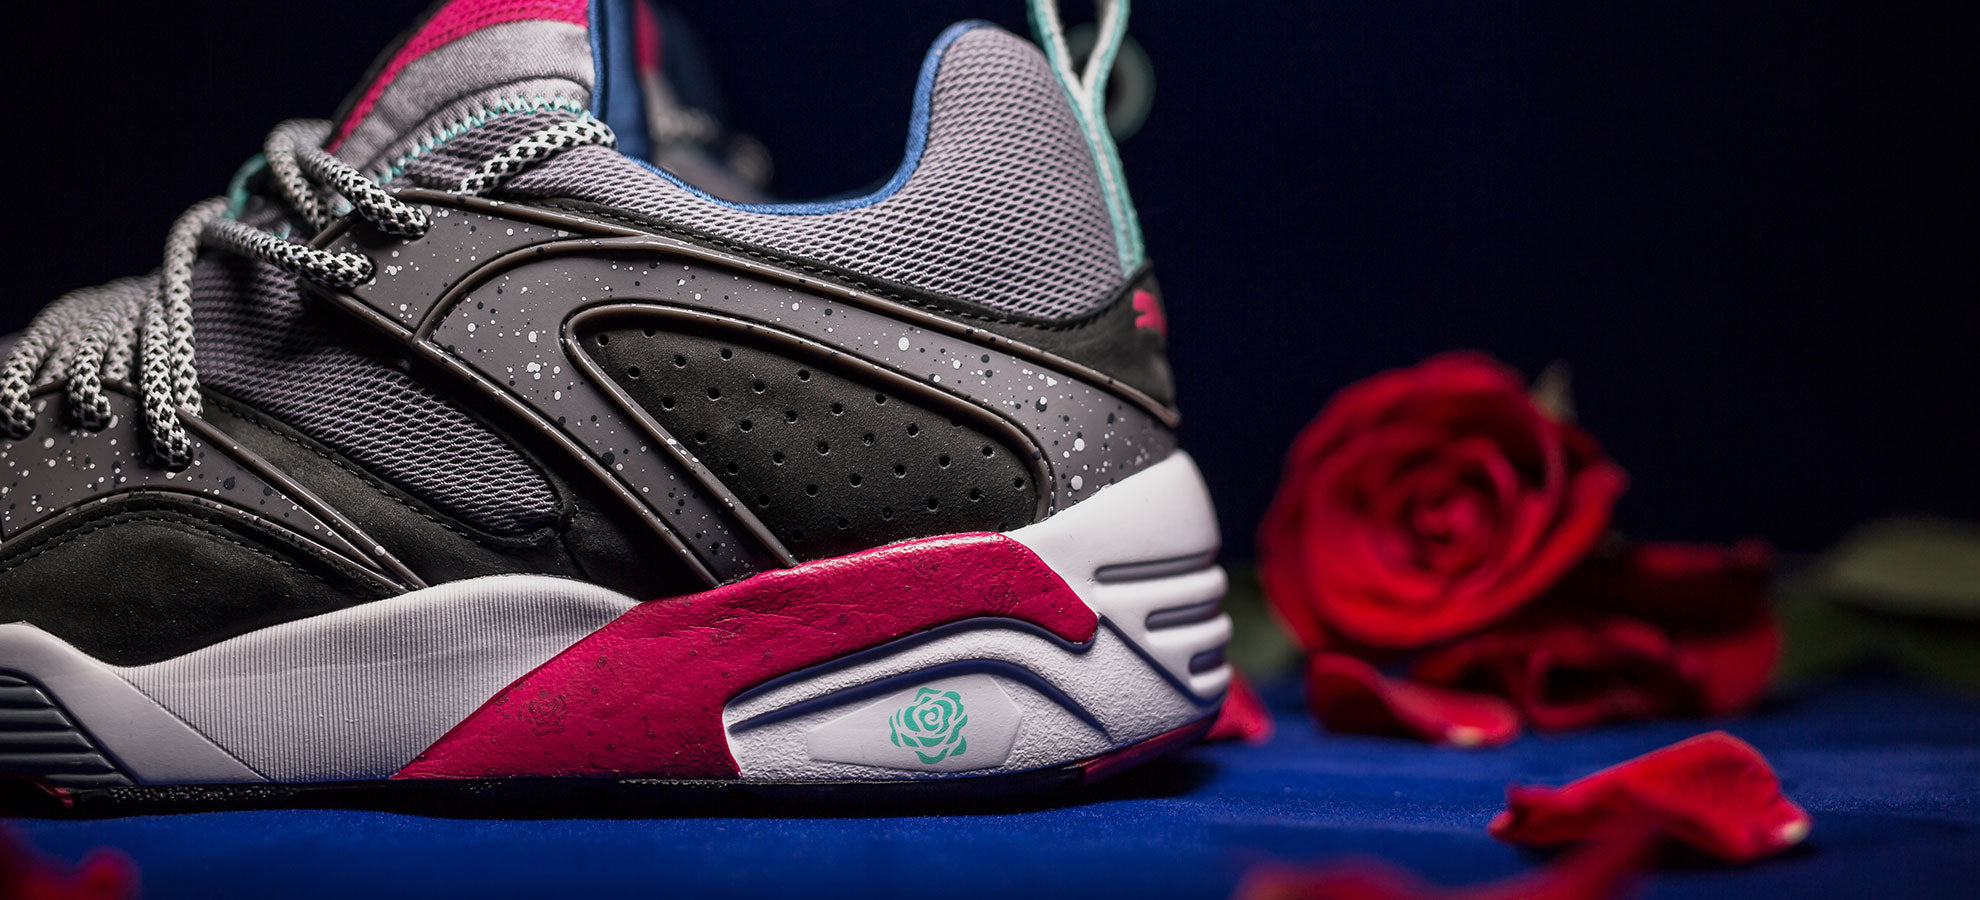 PUMA X CROSSOVER BLAZE OF GLORY 'ROSES'